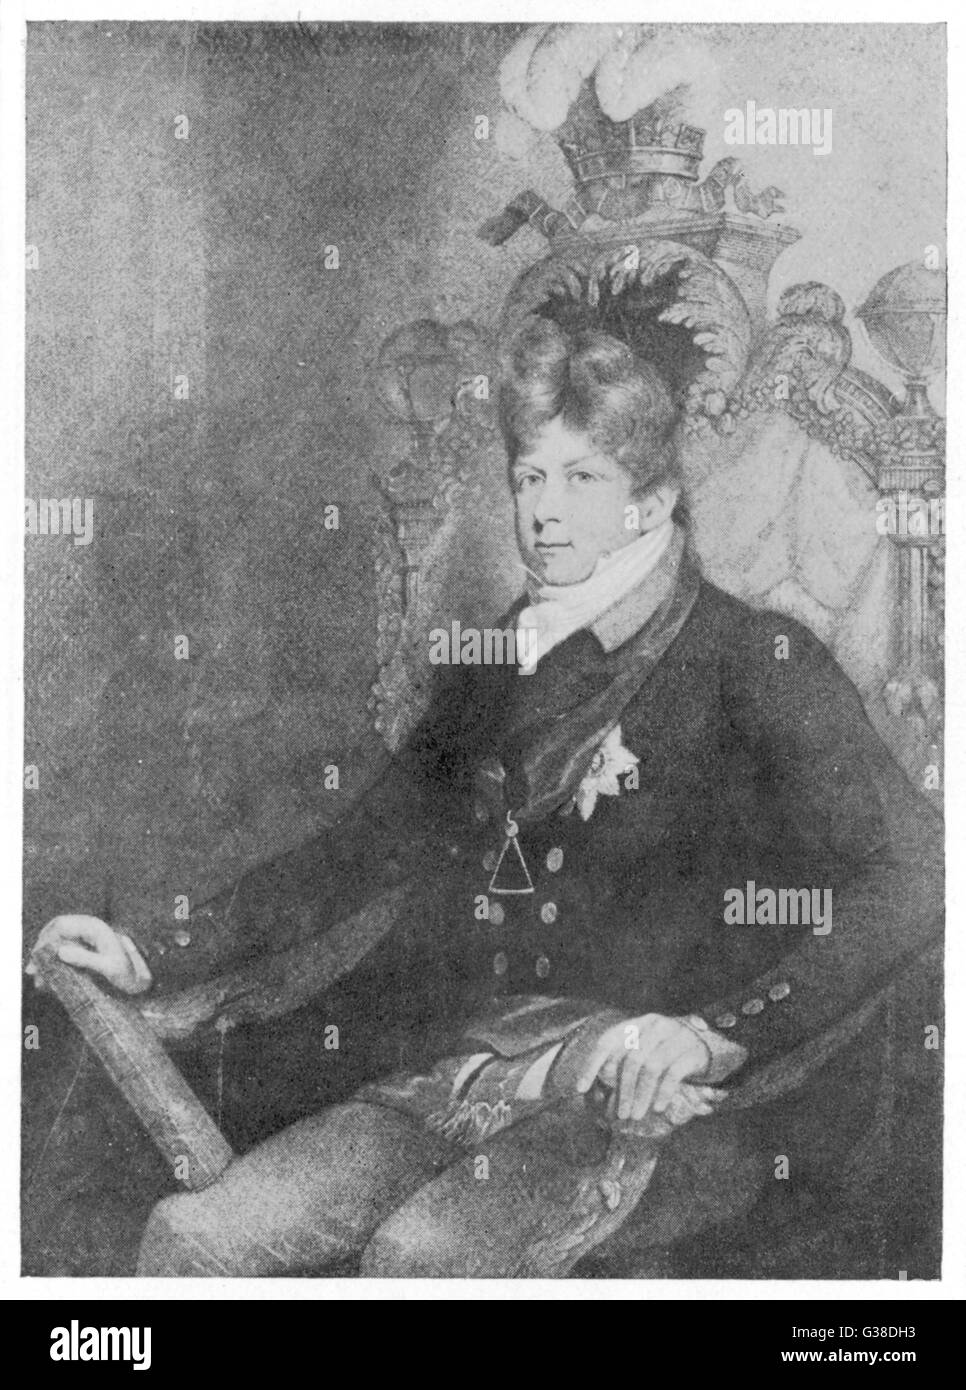 GEORGE IV in the regalia of Grand  Master of Freemasons        Date: 1762 - 1830 - Stock Image